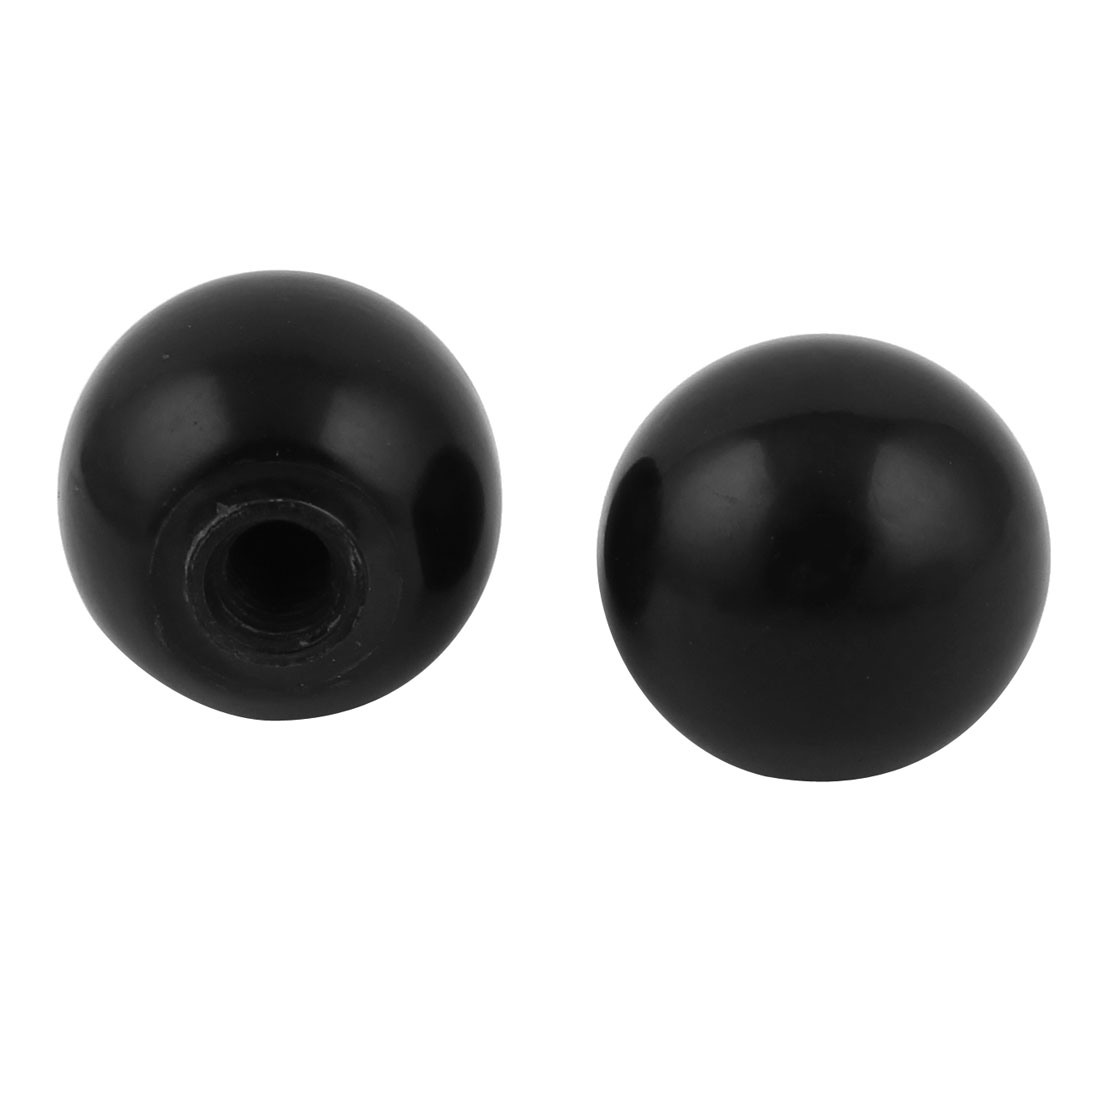 2pcs M10x31mm Thread Black Round Plastic 40mm Diameter Ball Lever Knob